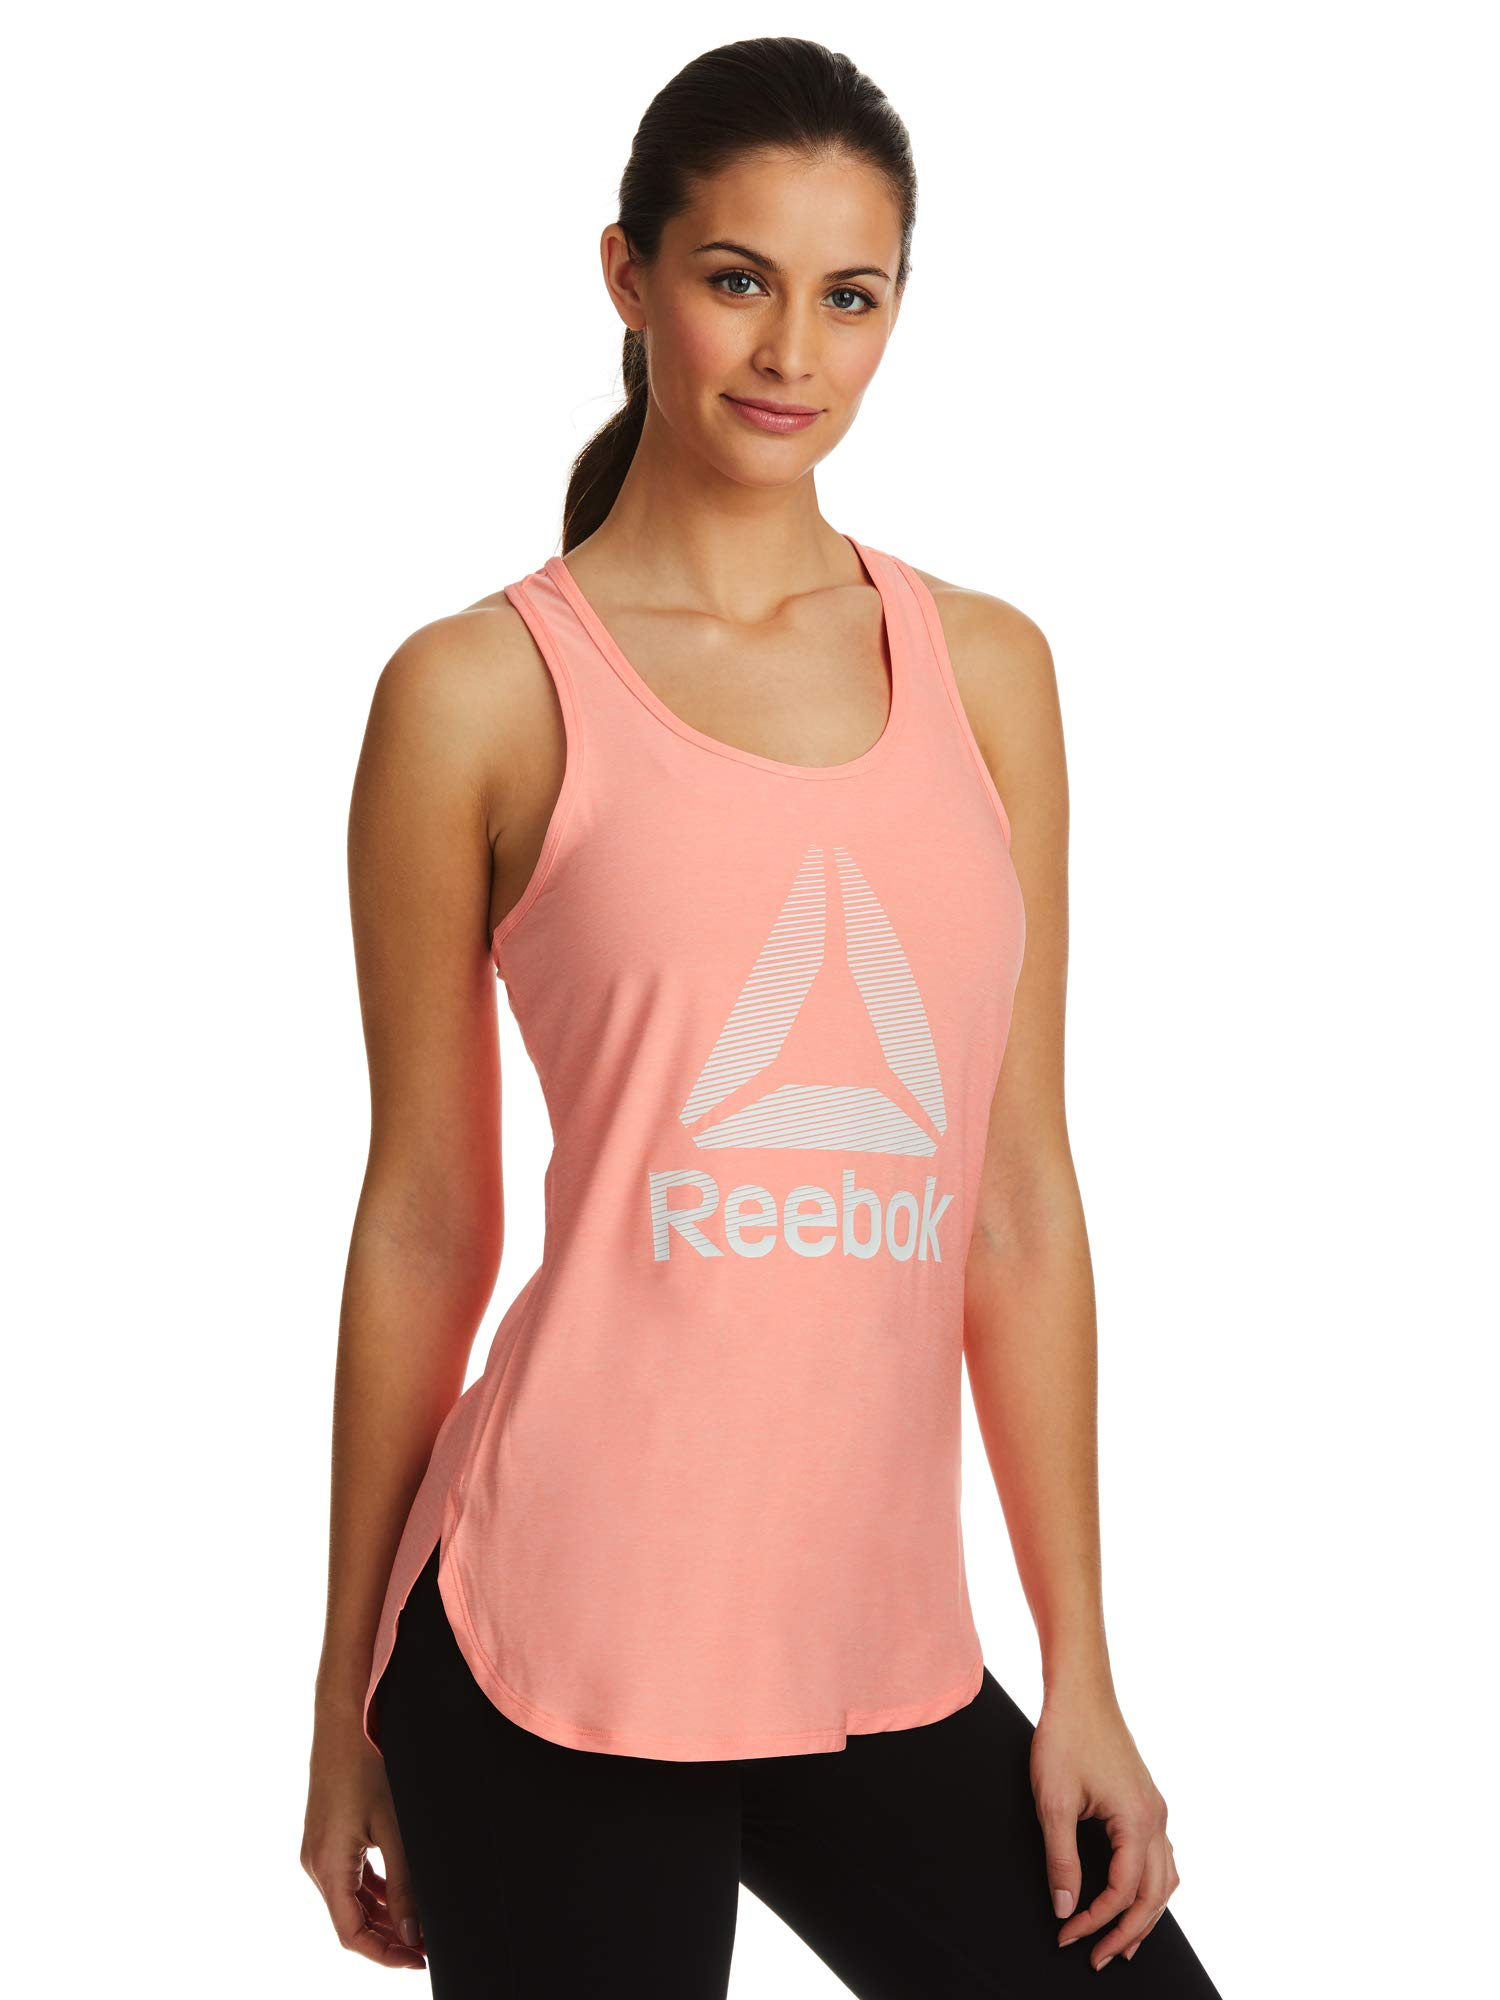 Reebok Women's Legend Performance Singlet Racerback Tank Top - Coral Pink Flare Heather, X-Small